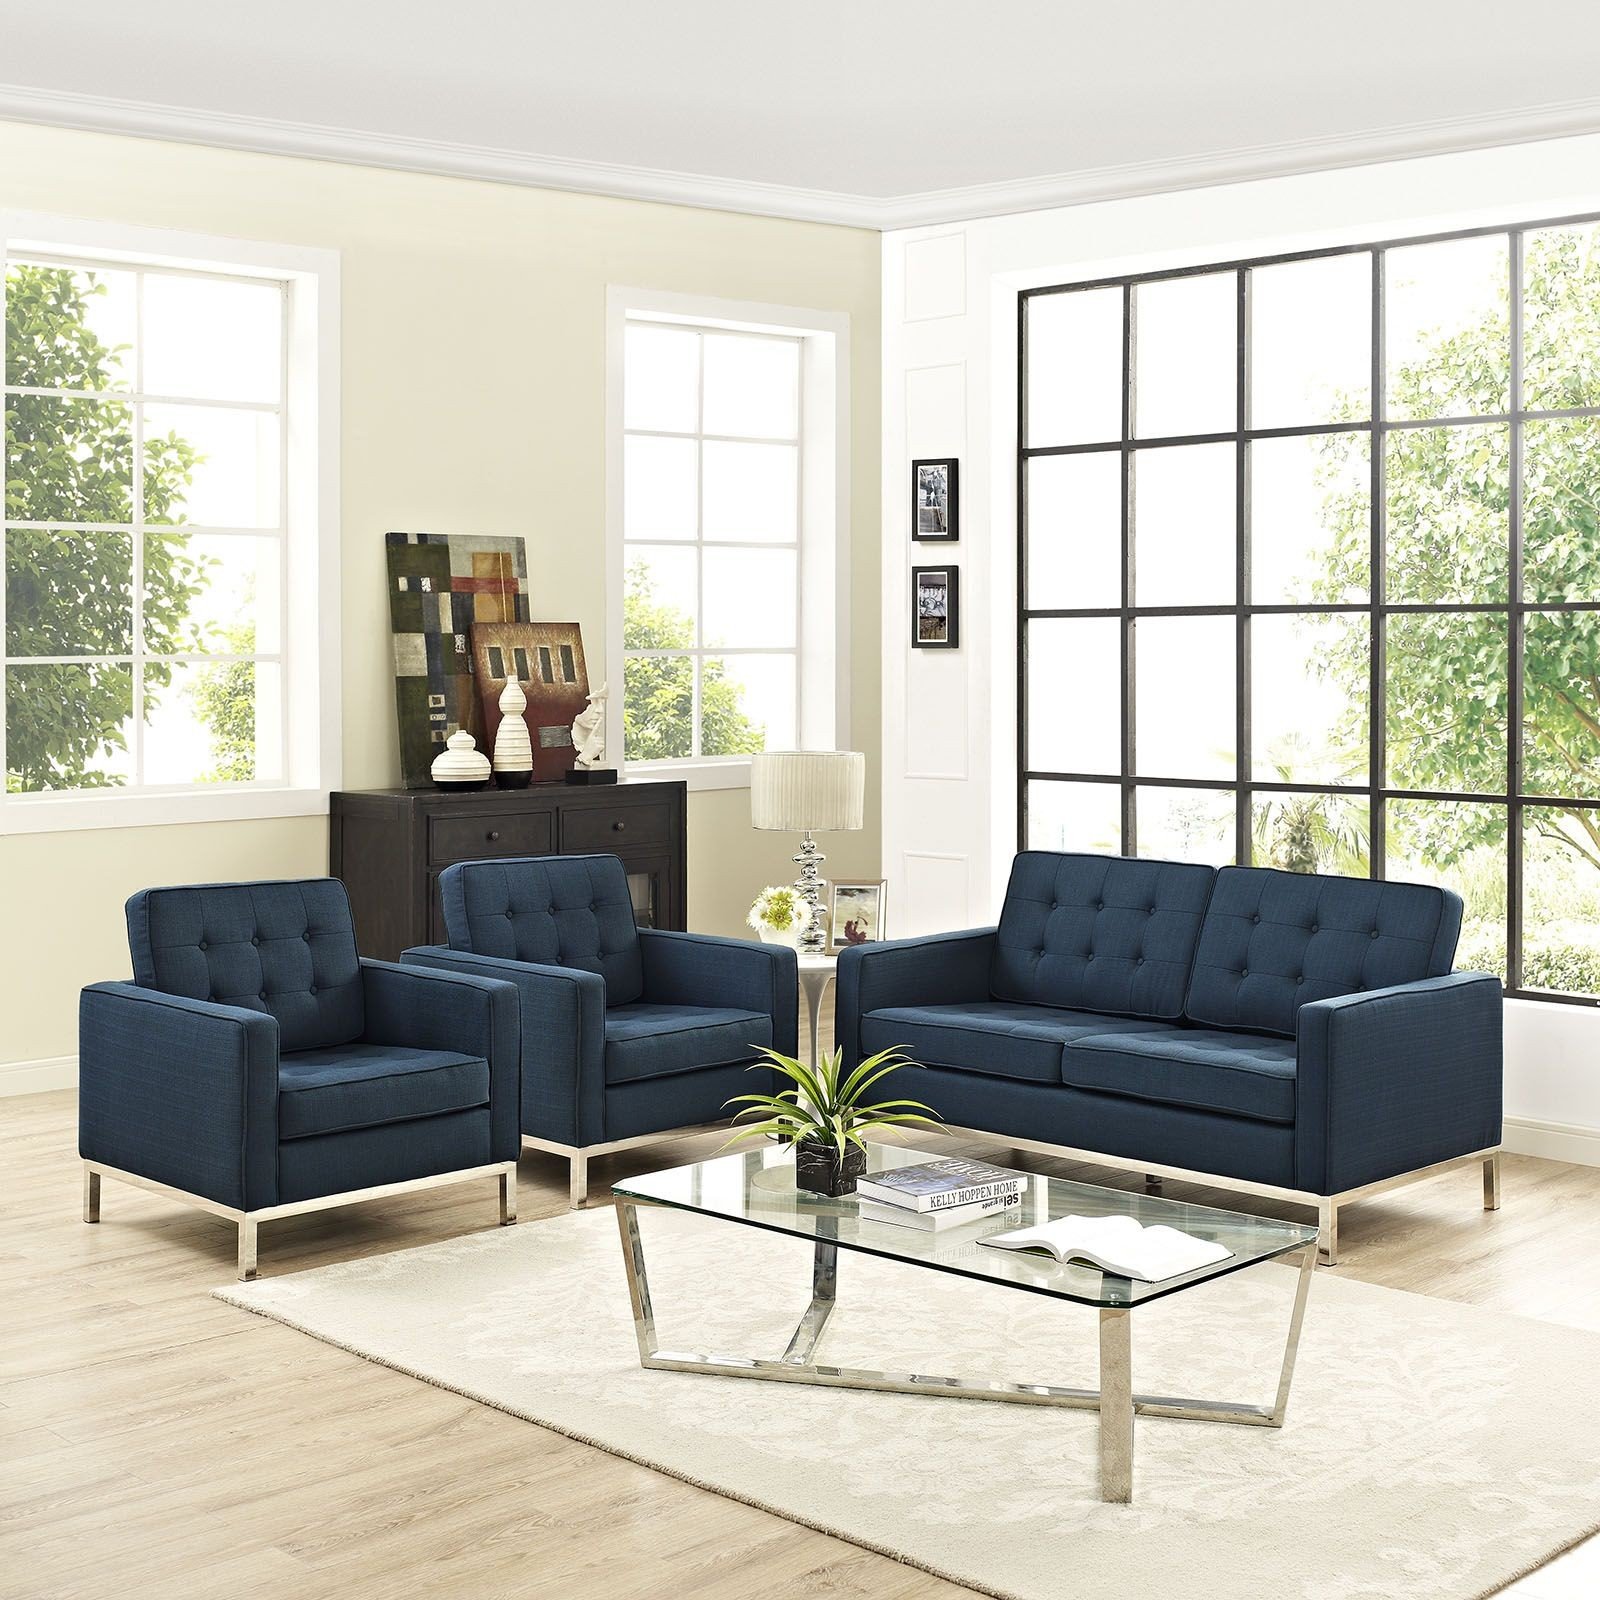 Loft Azure 3 Piece Upholstered Living Room Set Eei 2438 Azu Set Renegade Furniture